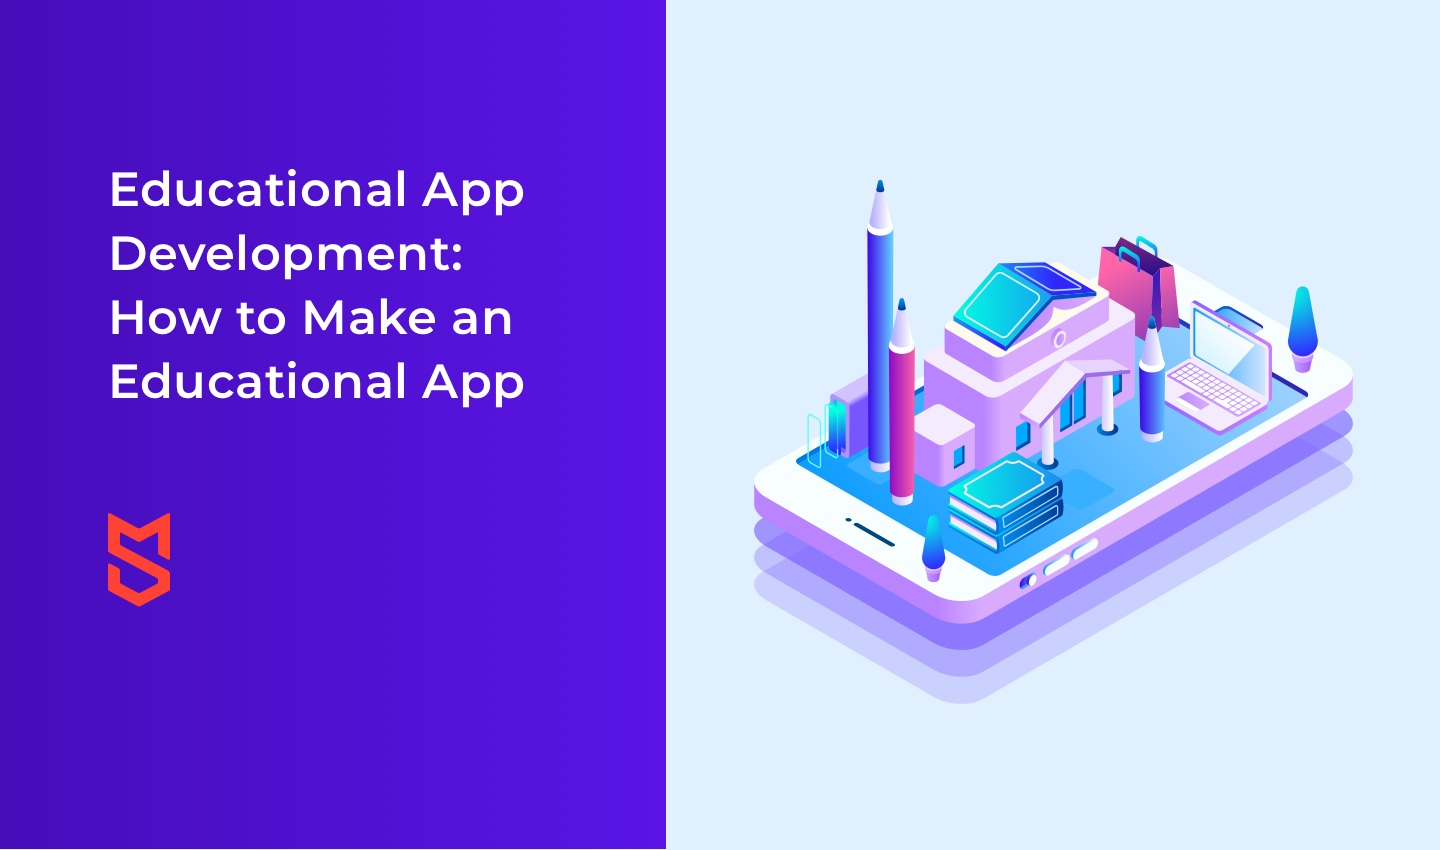 Educational App Development: How to Make an Educational App